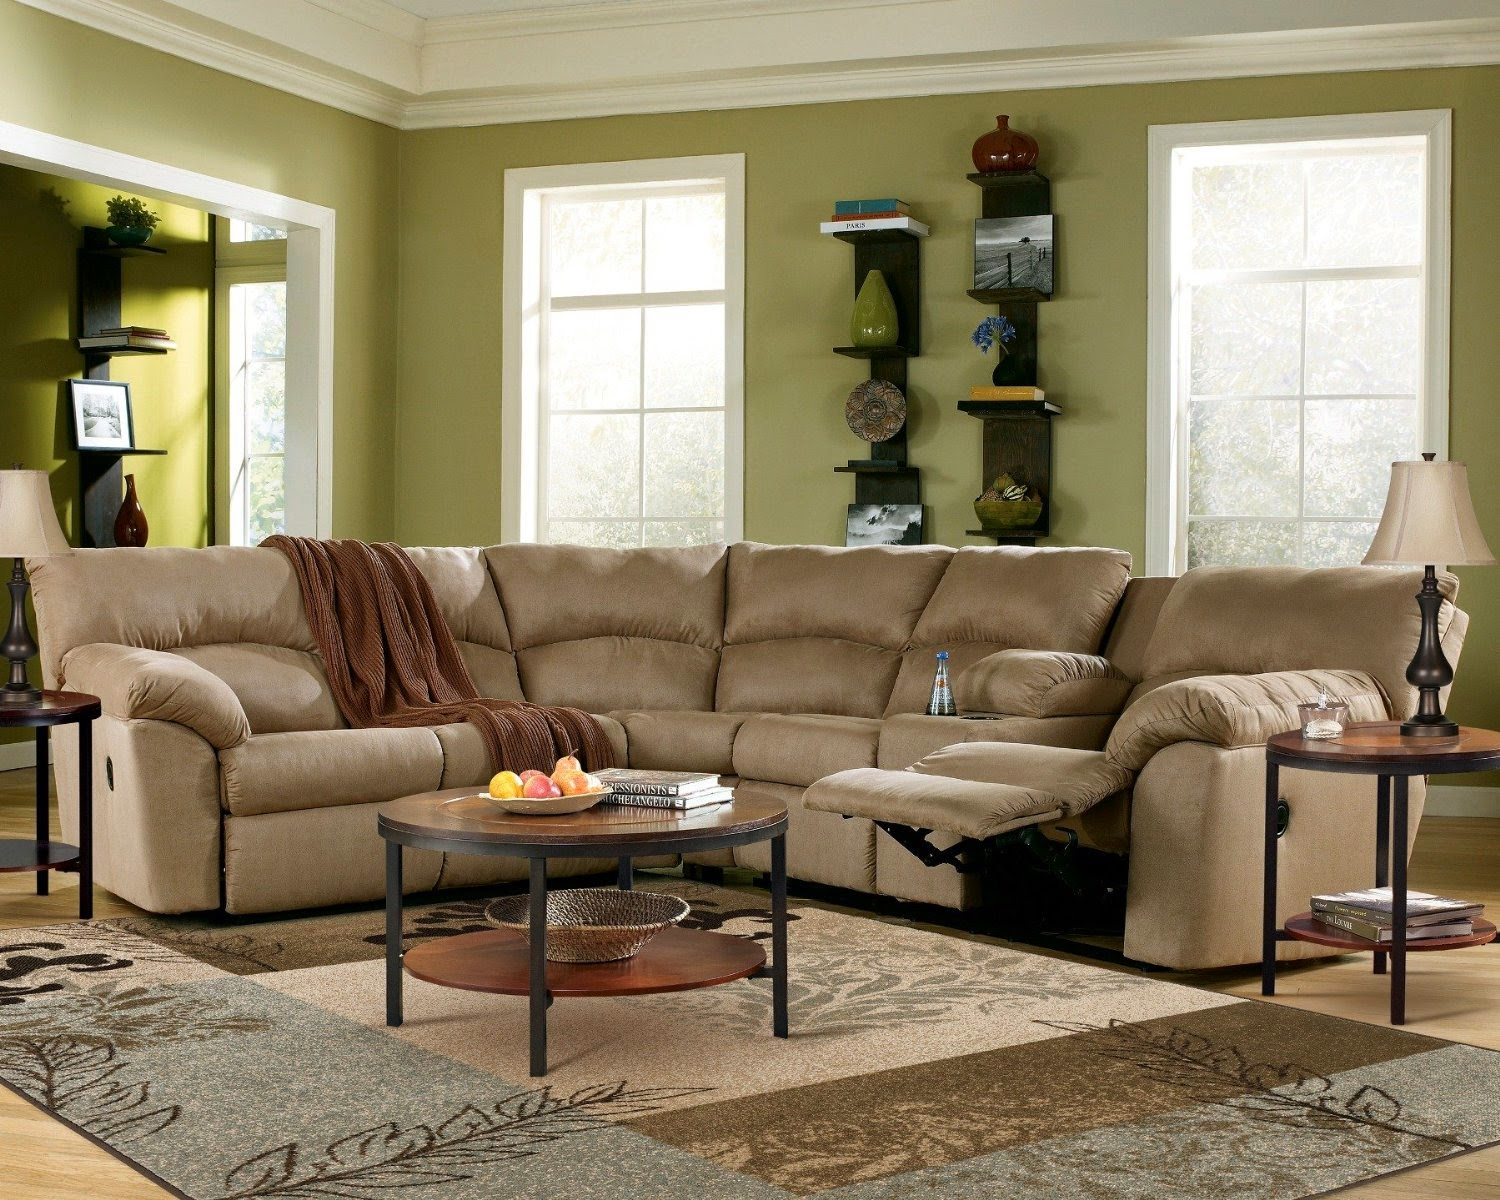 Curved sofa curved reclining sofa for Curved sectional sofa amazon